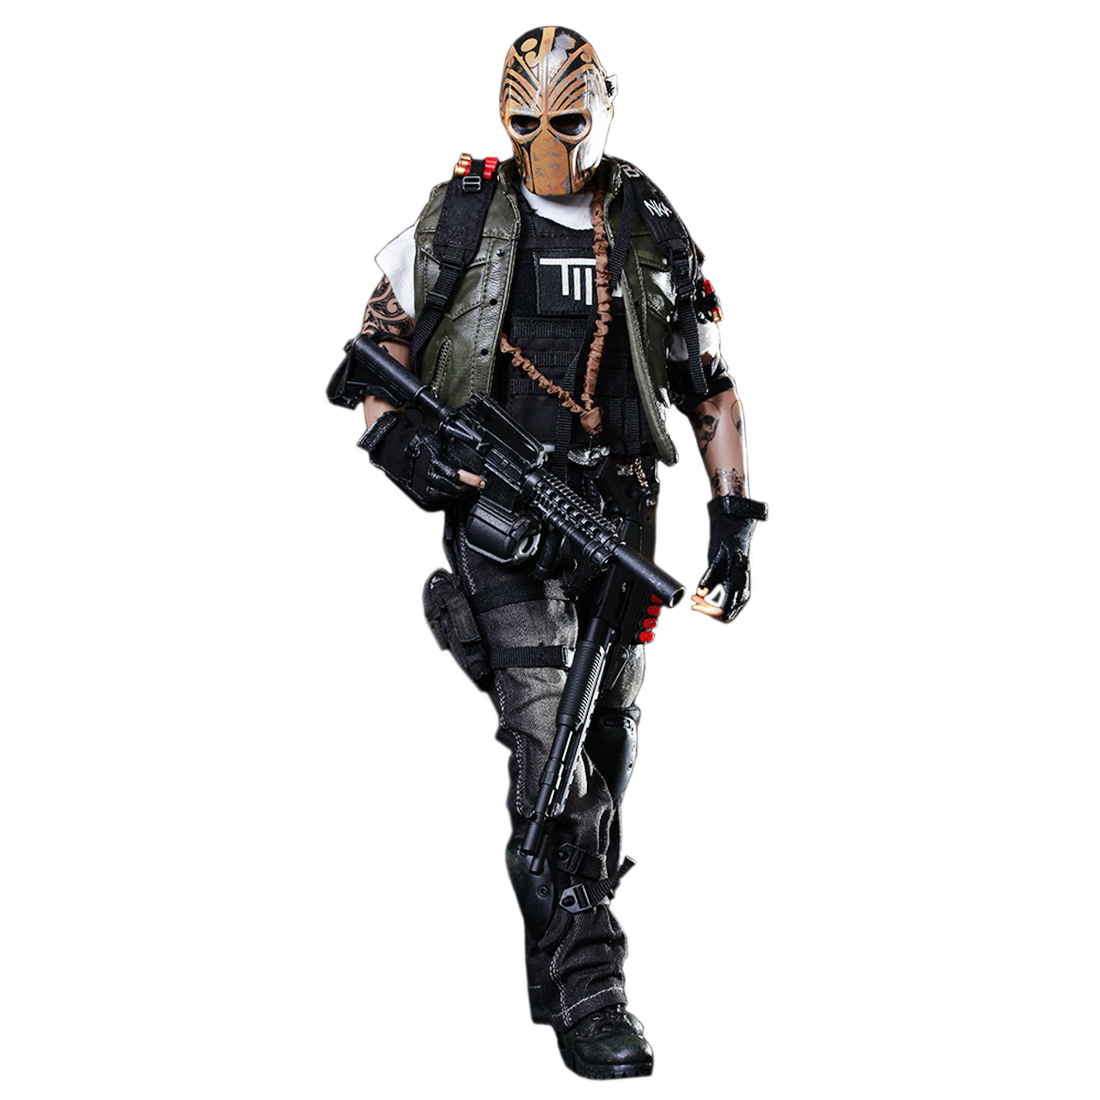 NFSTRIKE 30cm 1 6 Military Soldier Model Mercenary Movable Figure With Mask 2019 New Arrival Action